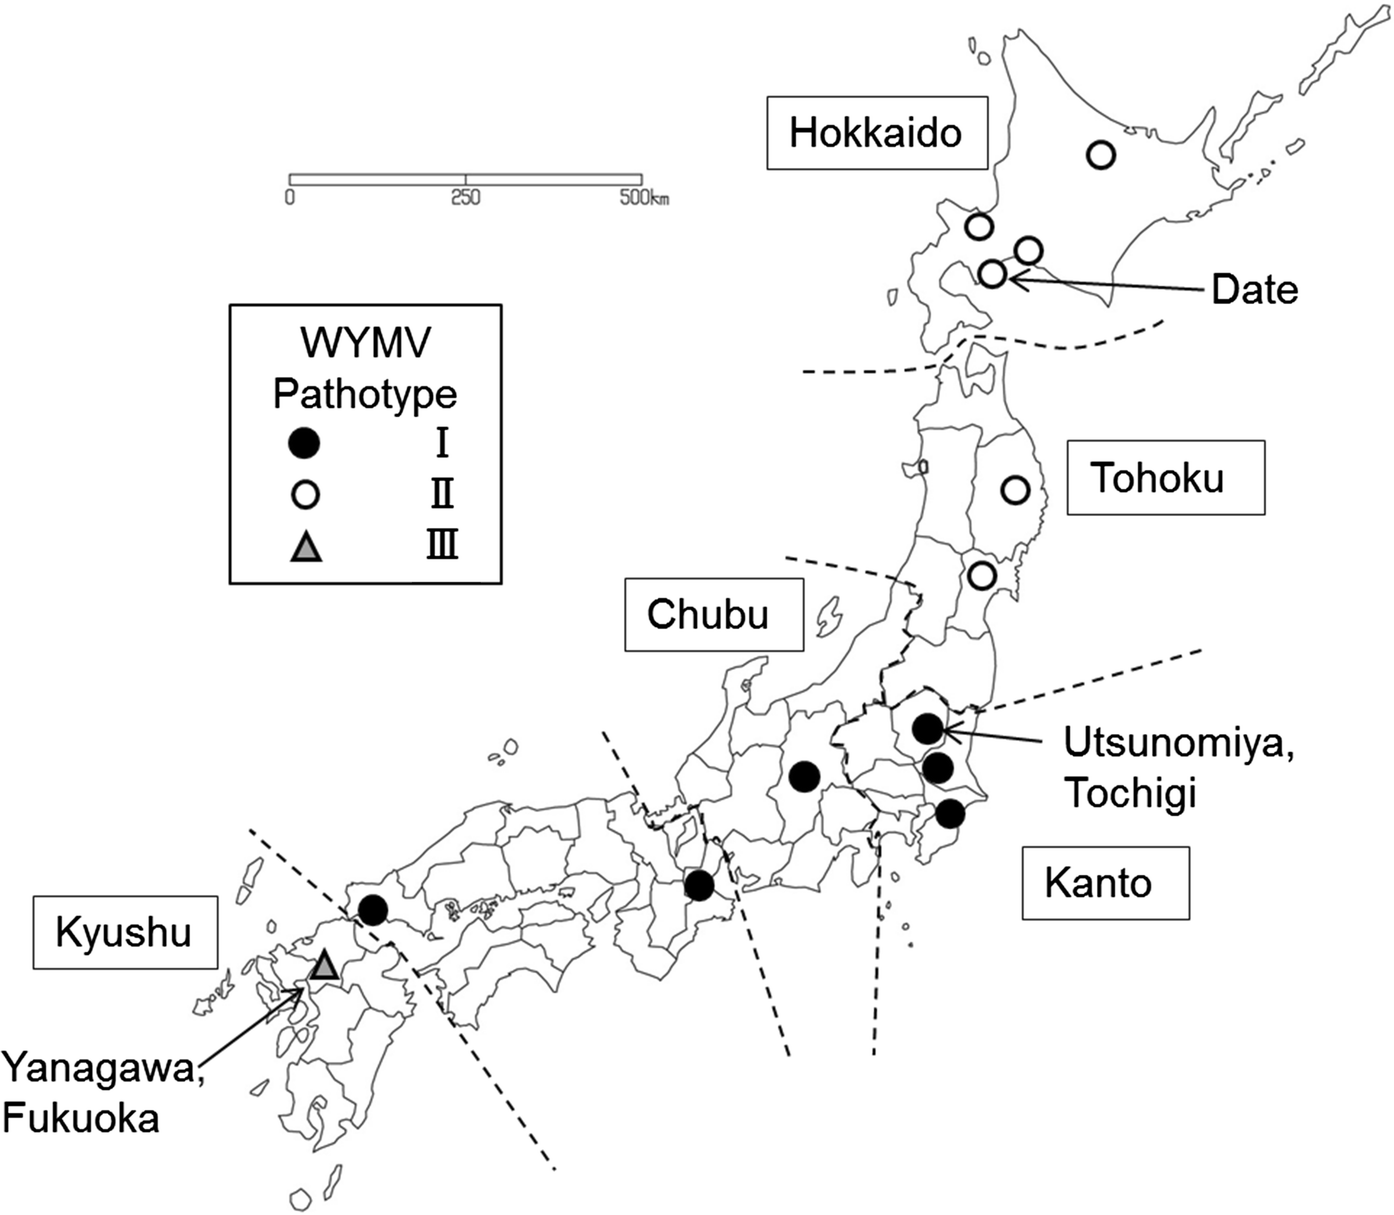 Response of Japanese wheat varieties to three pathotypes of wheat